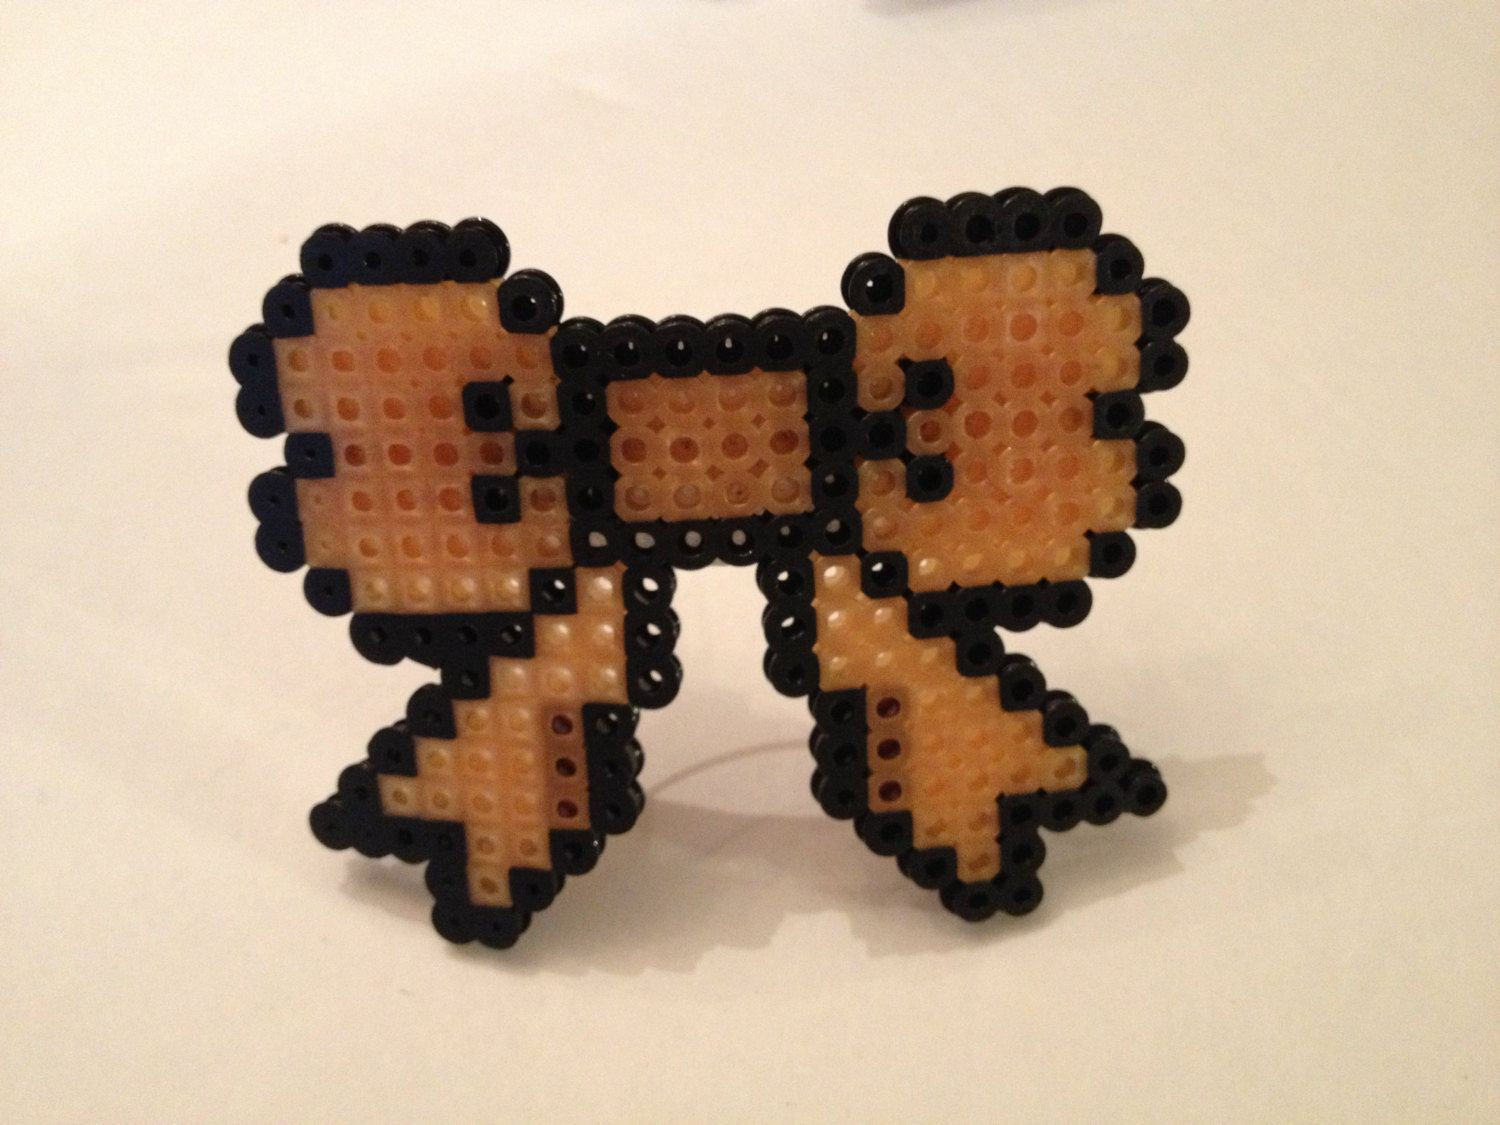 8-bit Pixelated Computer Geek Large Hair Bow Barrette by PinkCoyoteDreams on Etsy